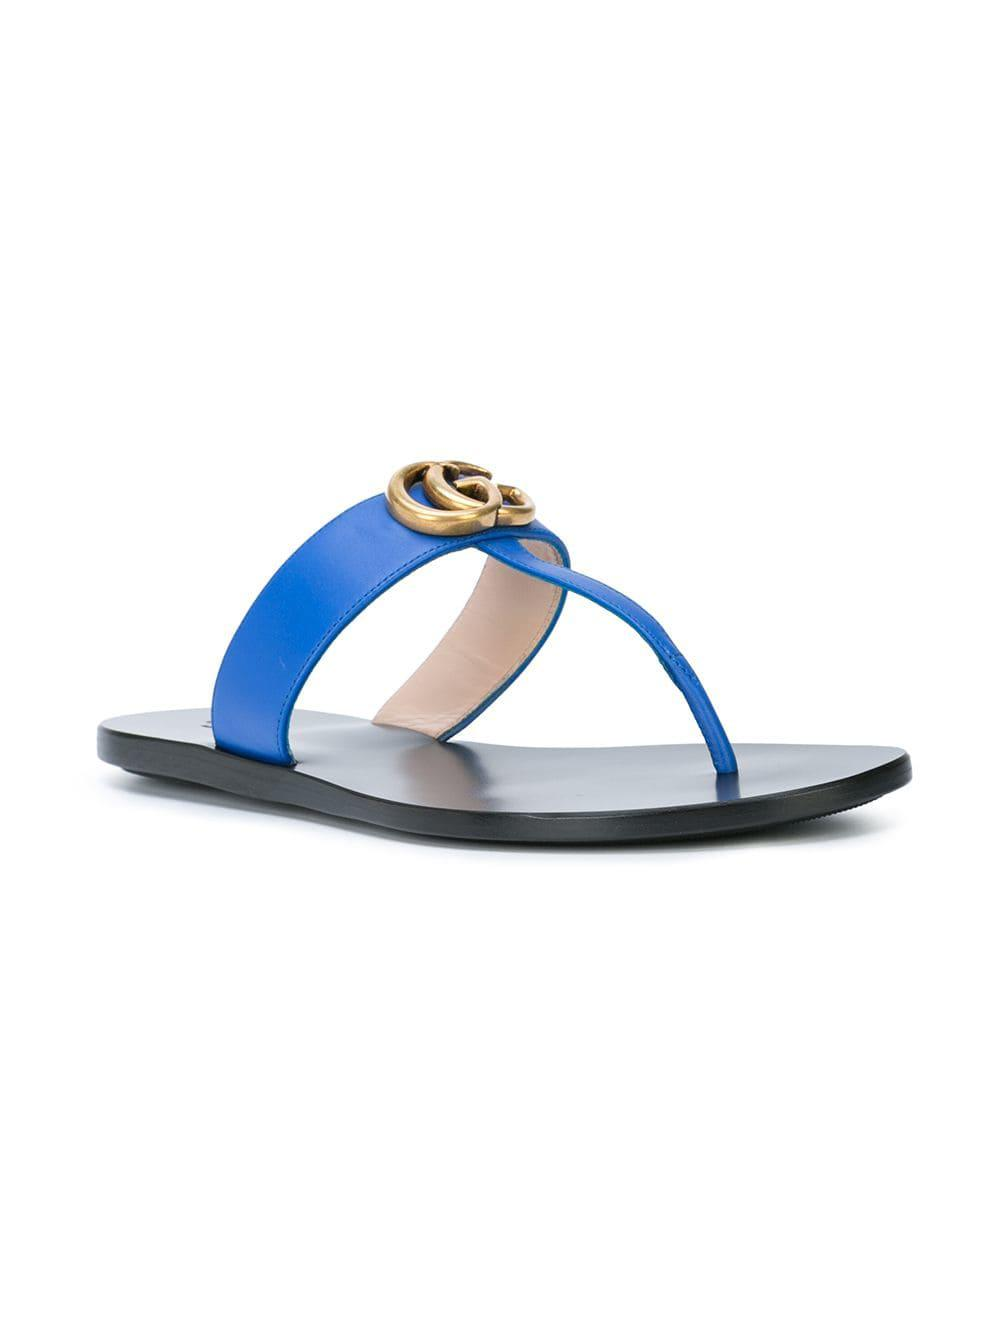 65598d2b538f Lyst - Gucci GG Thong Sandals in Blue